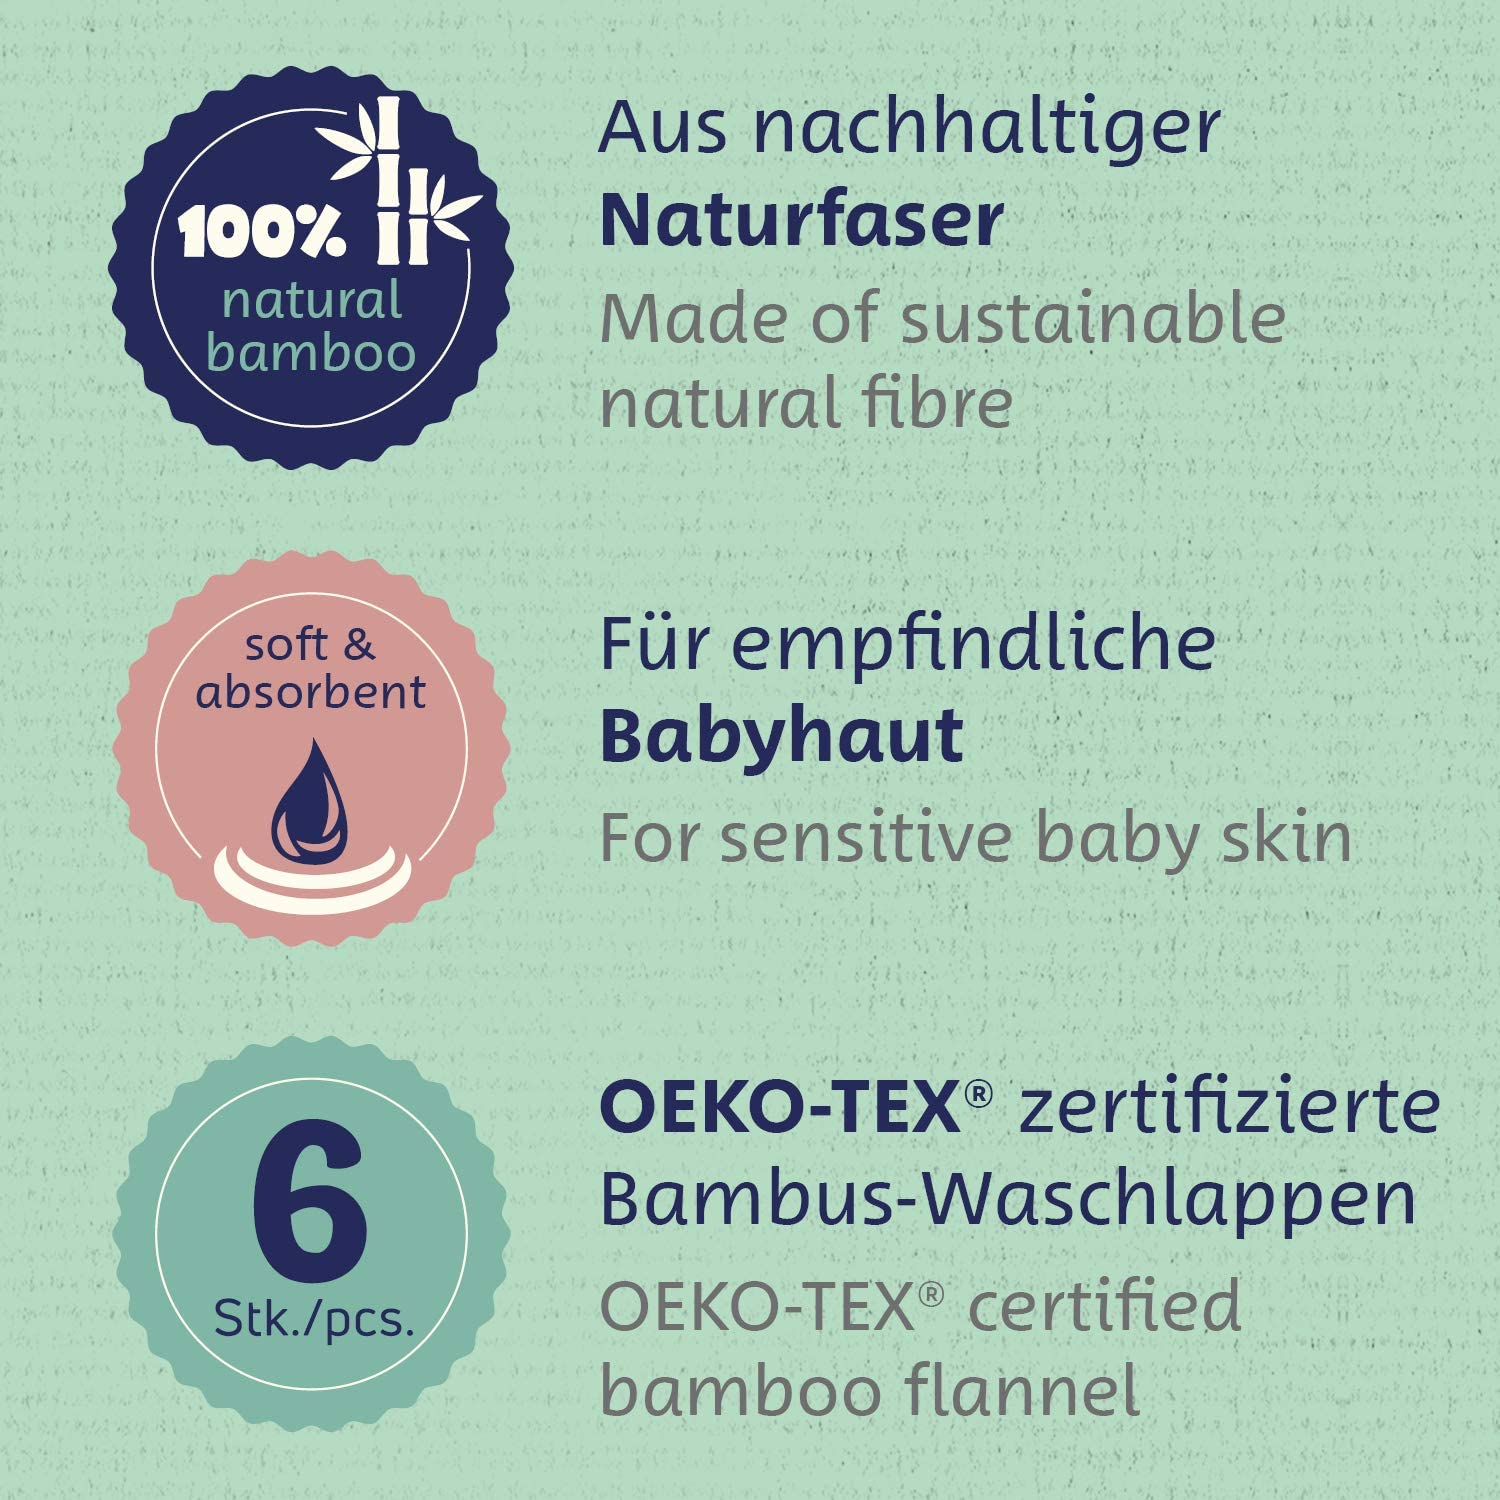 25 x 26 cm Organic Towel for Sensitive Baby Skin Oeko TEX/®-Standard 6-Pack Bamboo Baby wash Cloth Ultra-Soft Made of Sustainable Bamboo